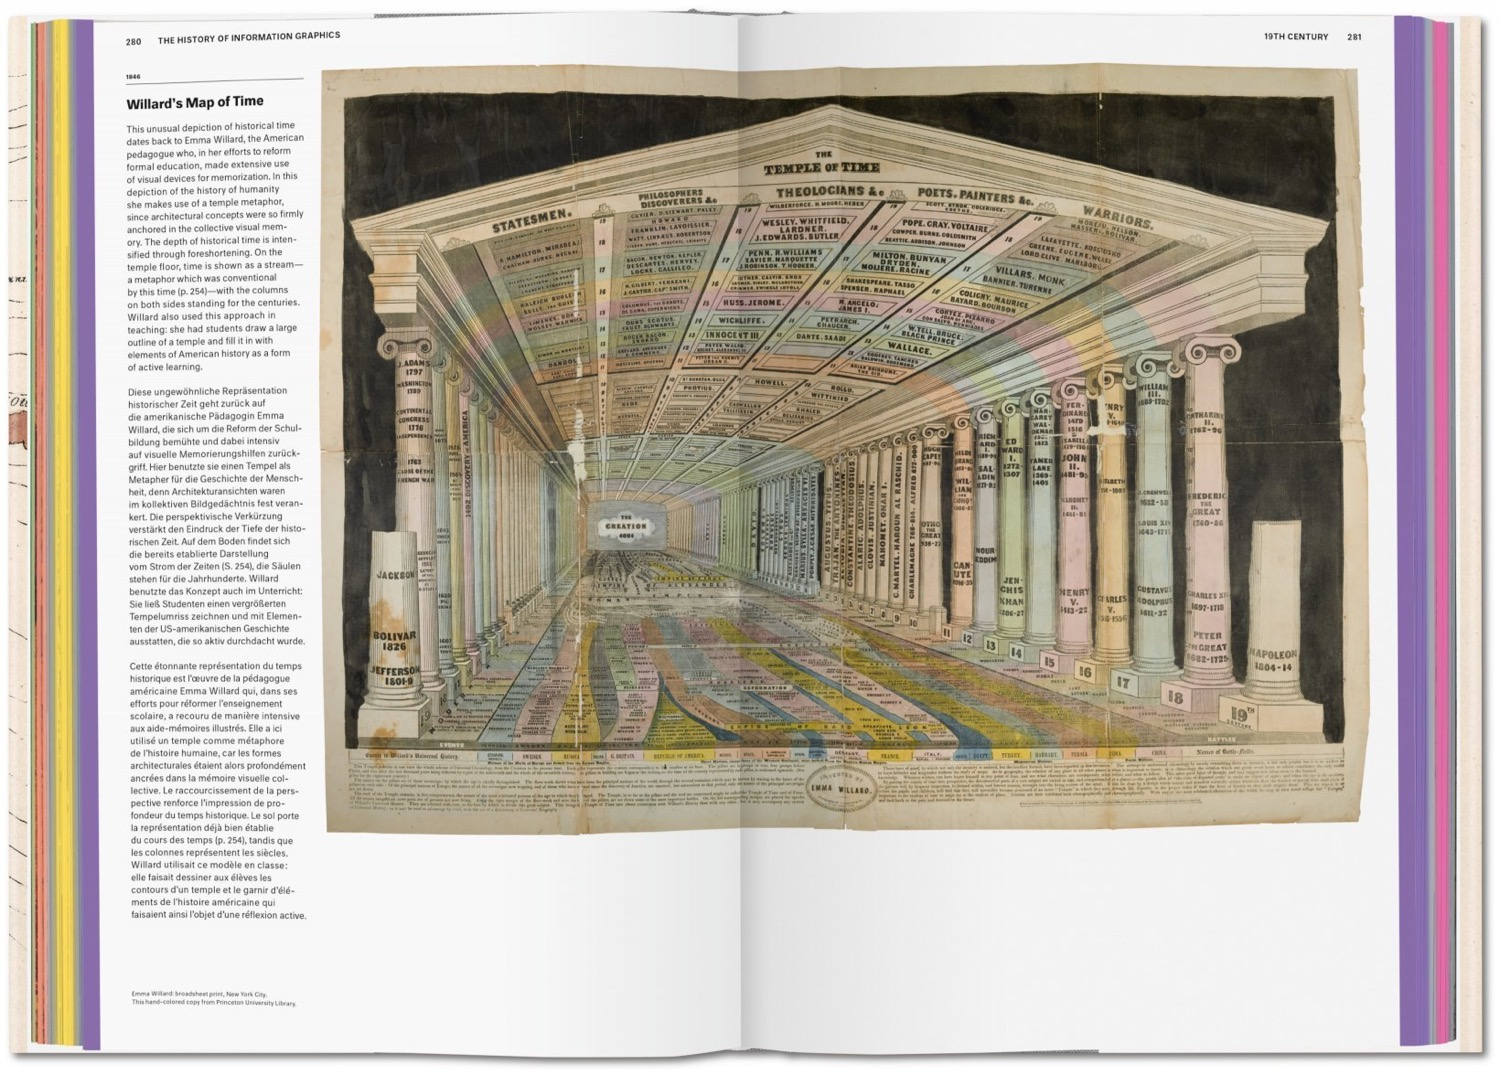 History of Information Graphics 5